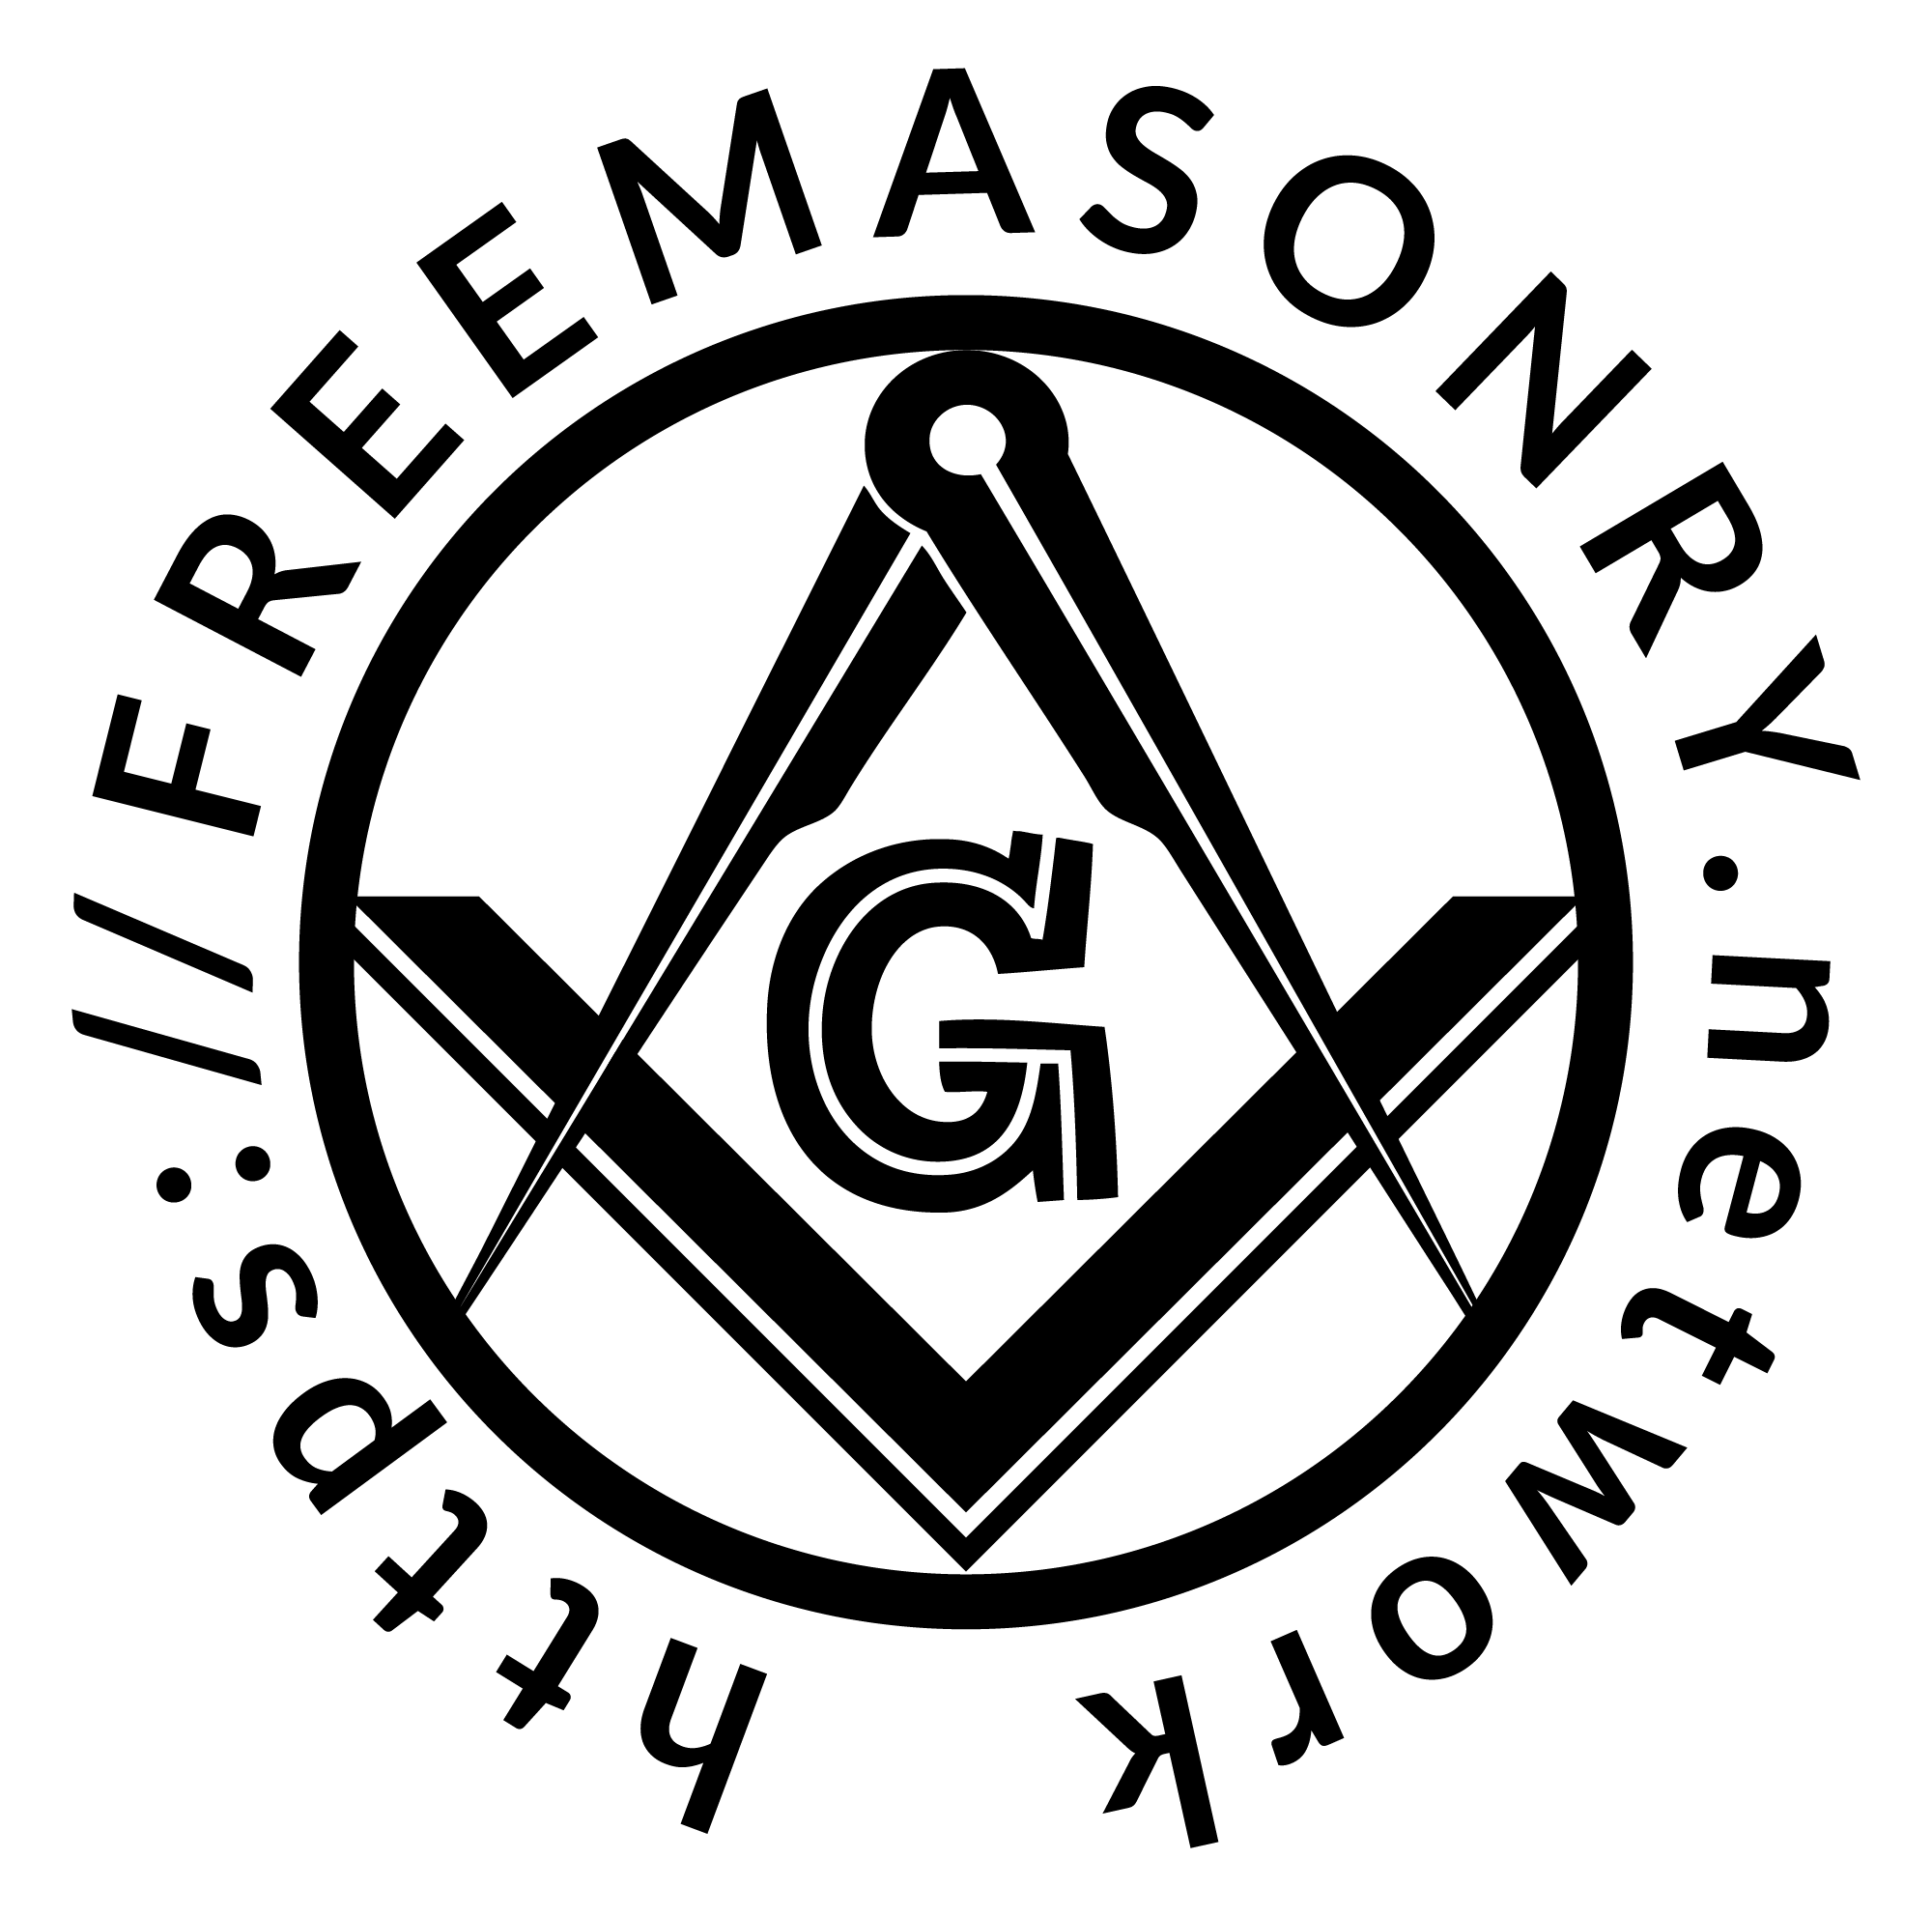 MASONIC IDEALS